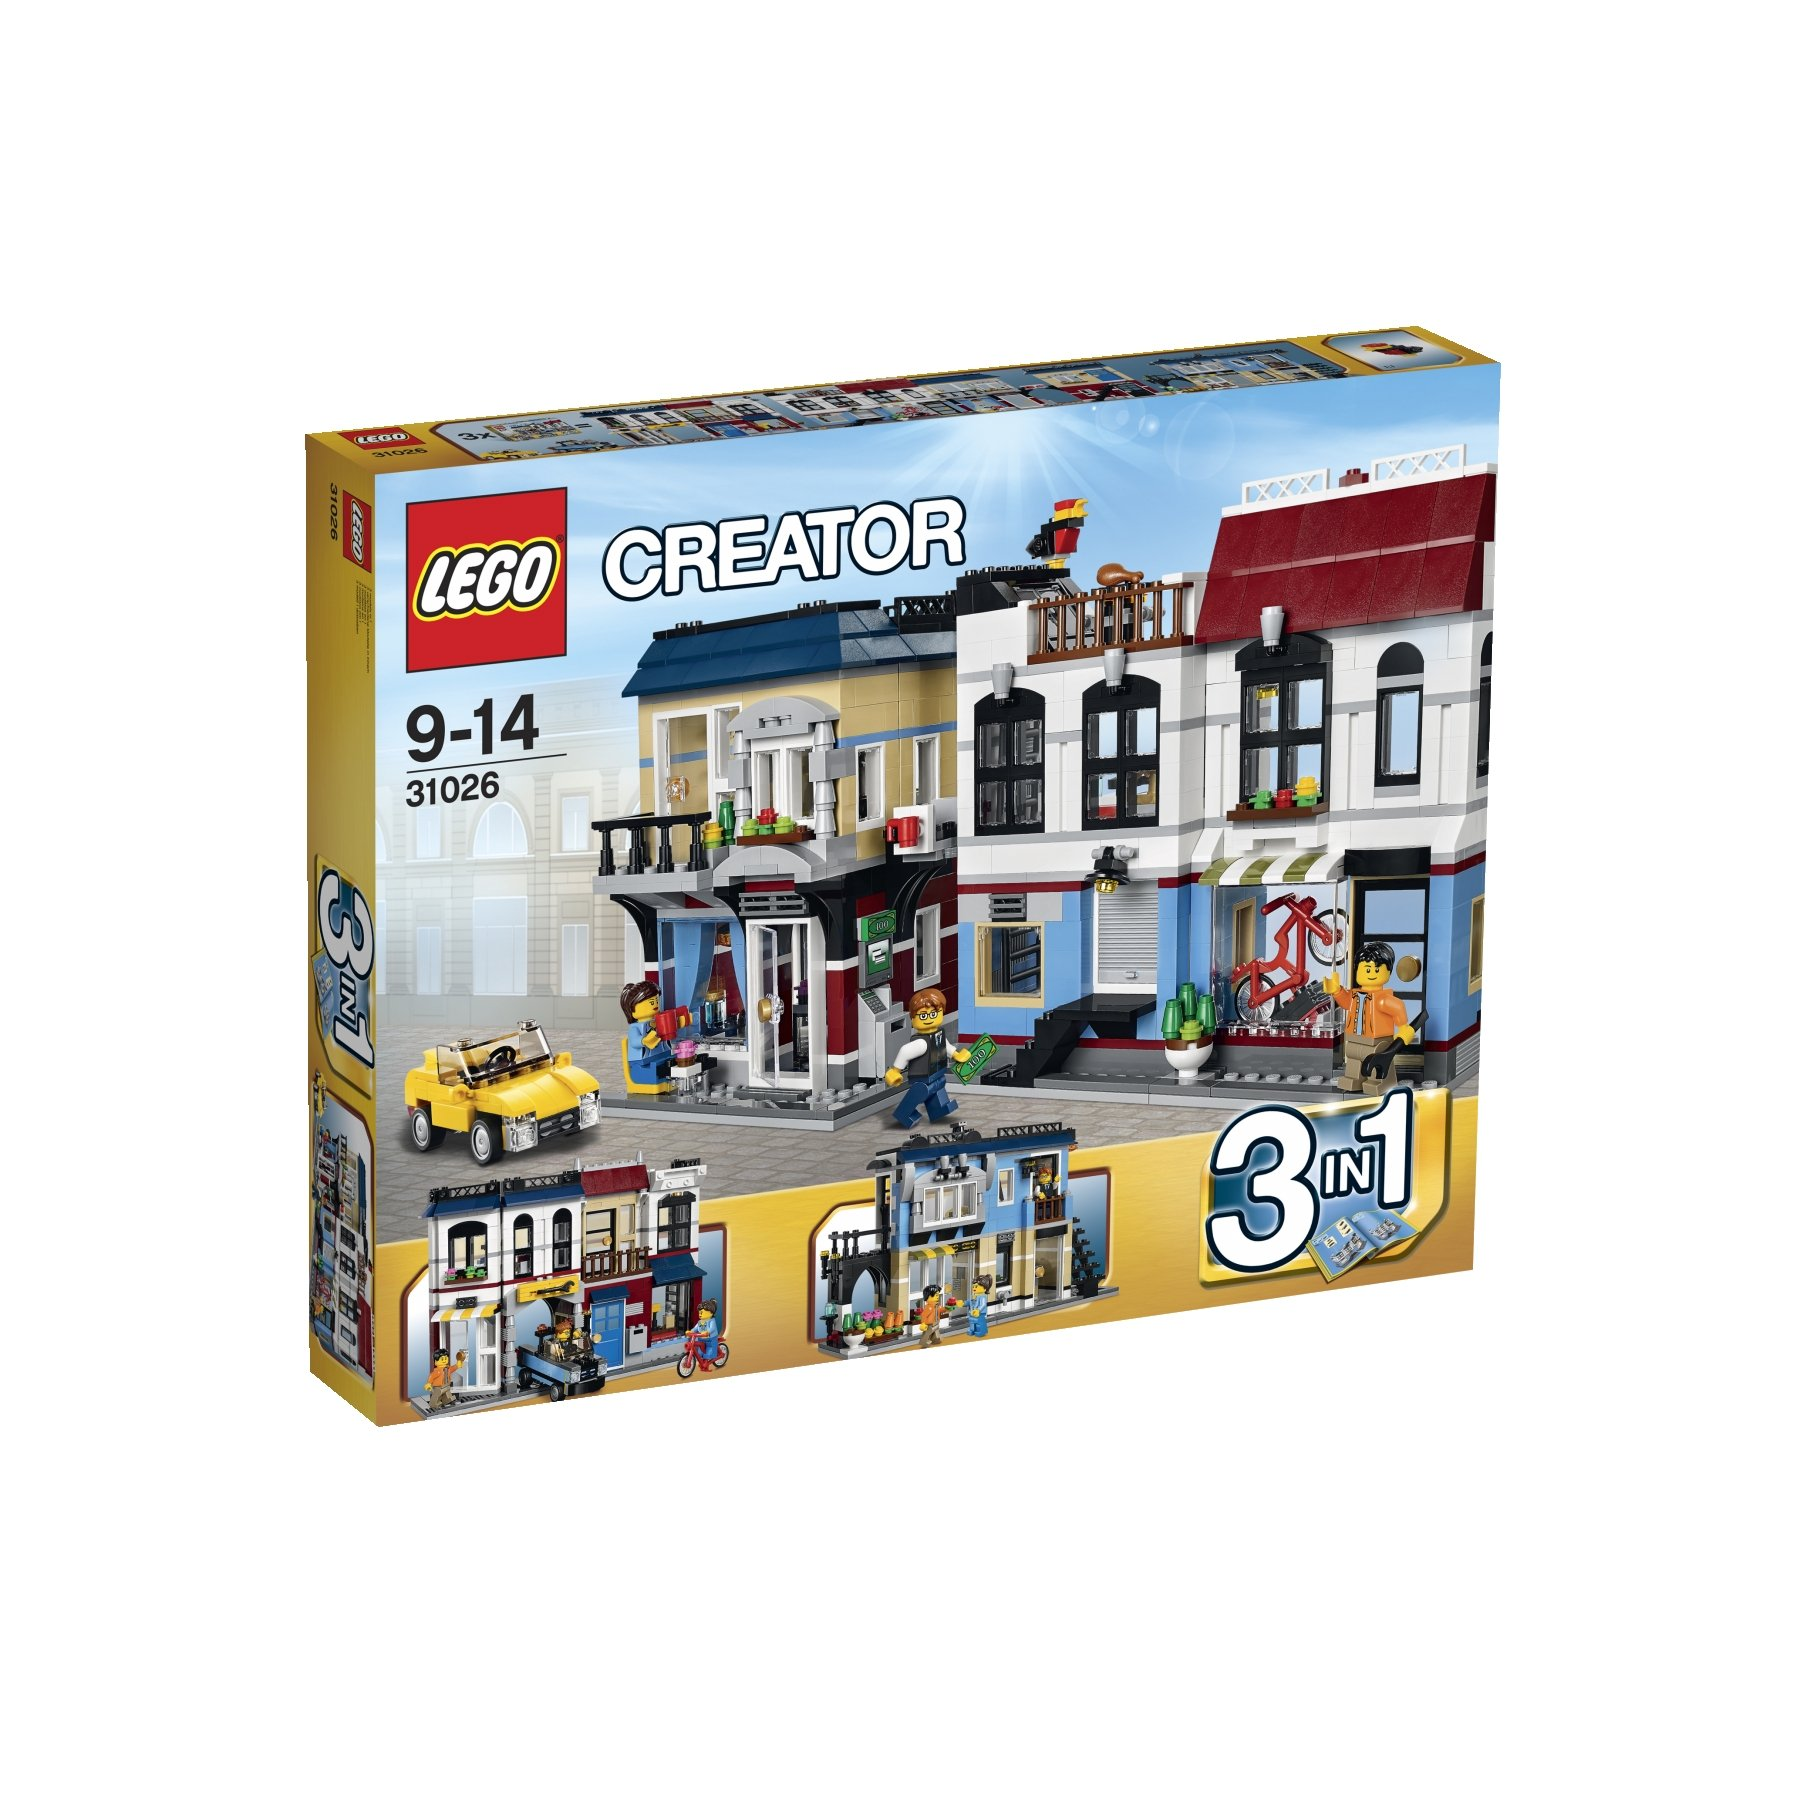 Lego Creator 31026 Bike Shop and Café